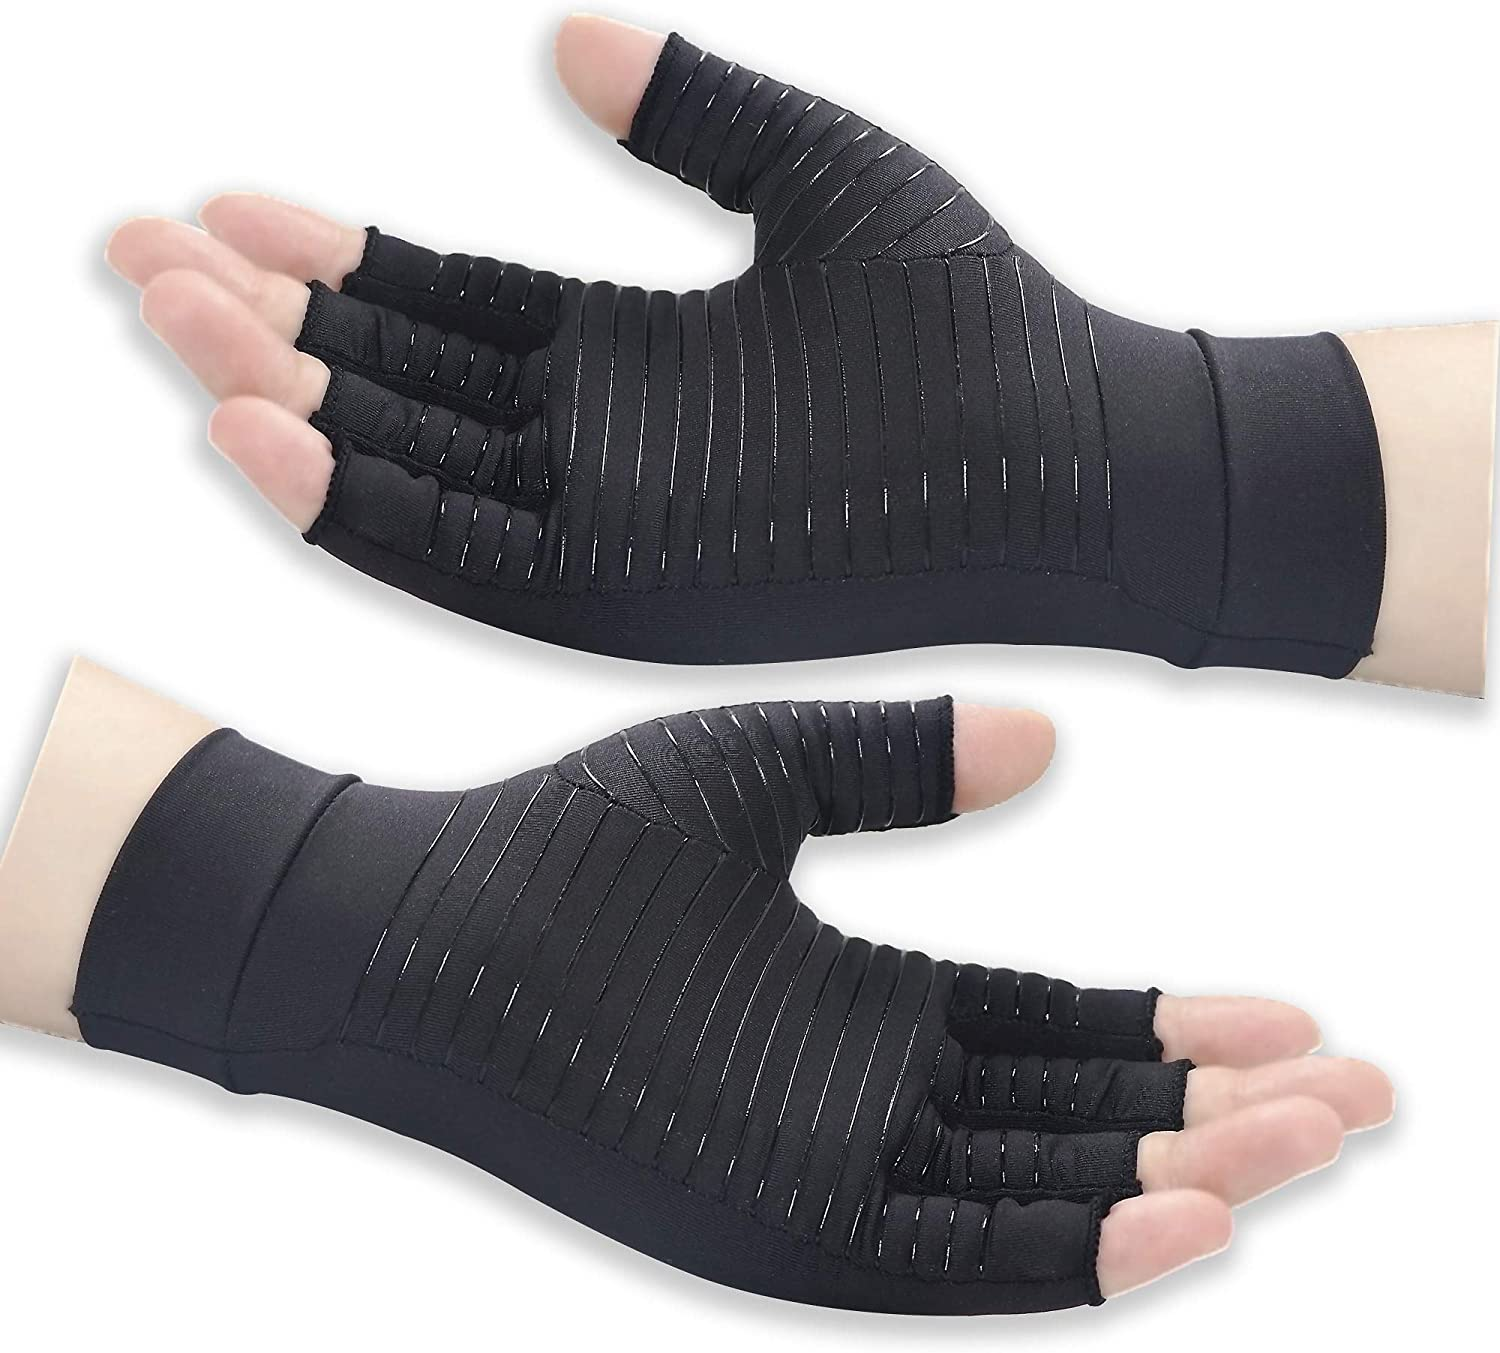 Copper Arthritis Gloves for Women and Men, Compression Gloves Relieve Pain from Hand Pain, Swelling and Carpal Tunnel, Fingerless for Typing, Support for Joints, Large